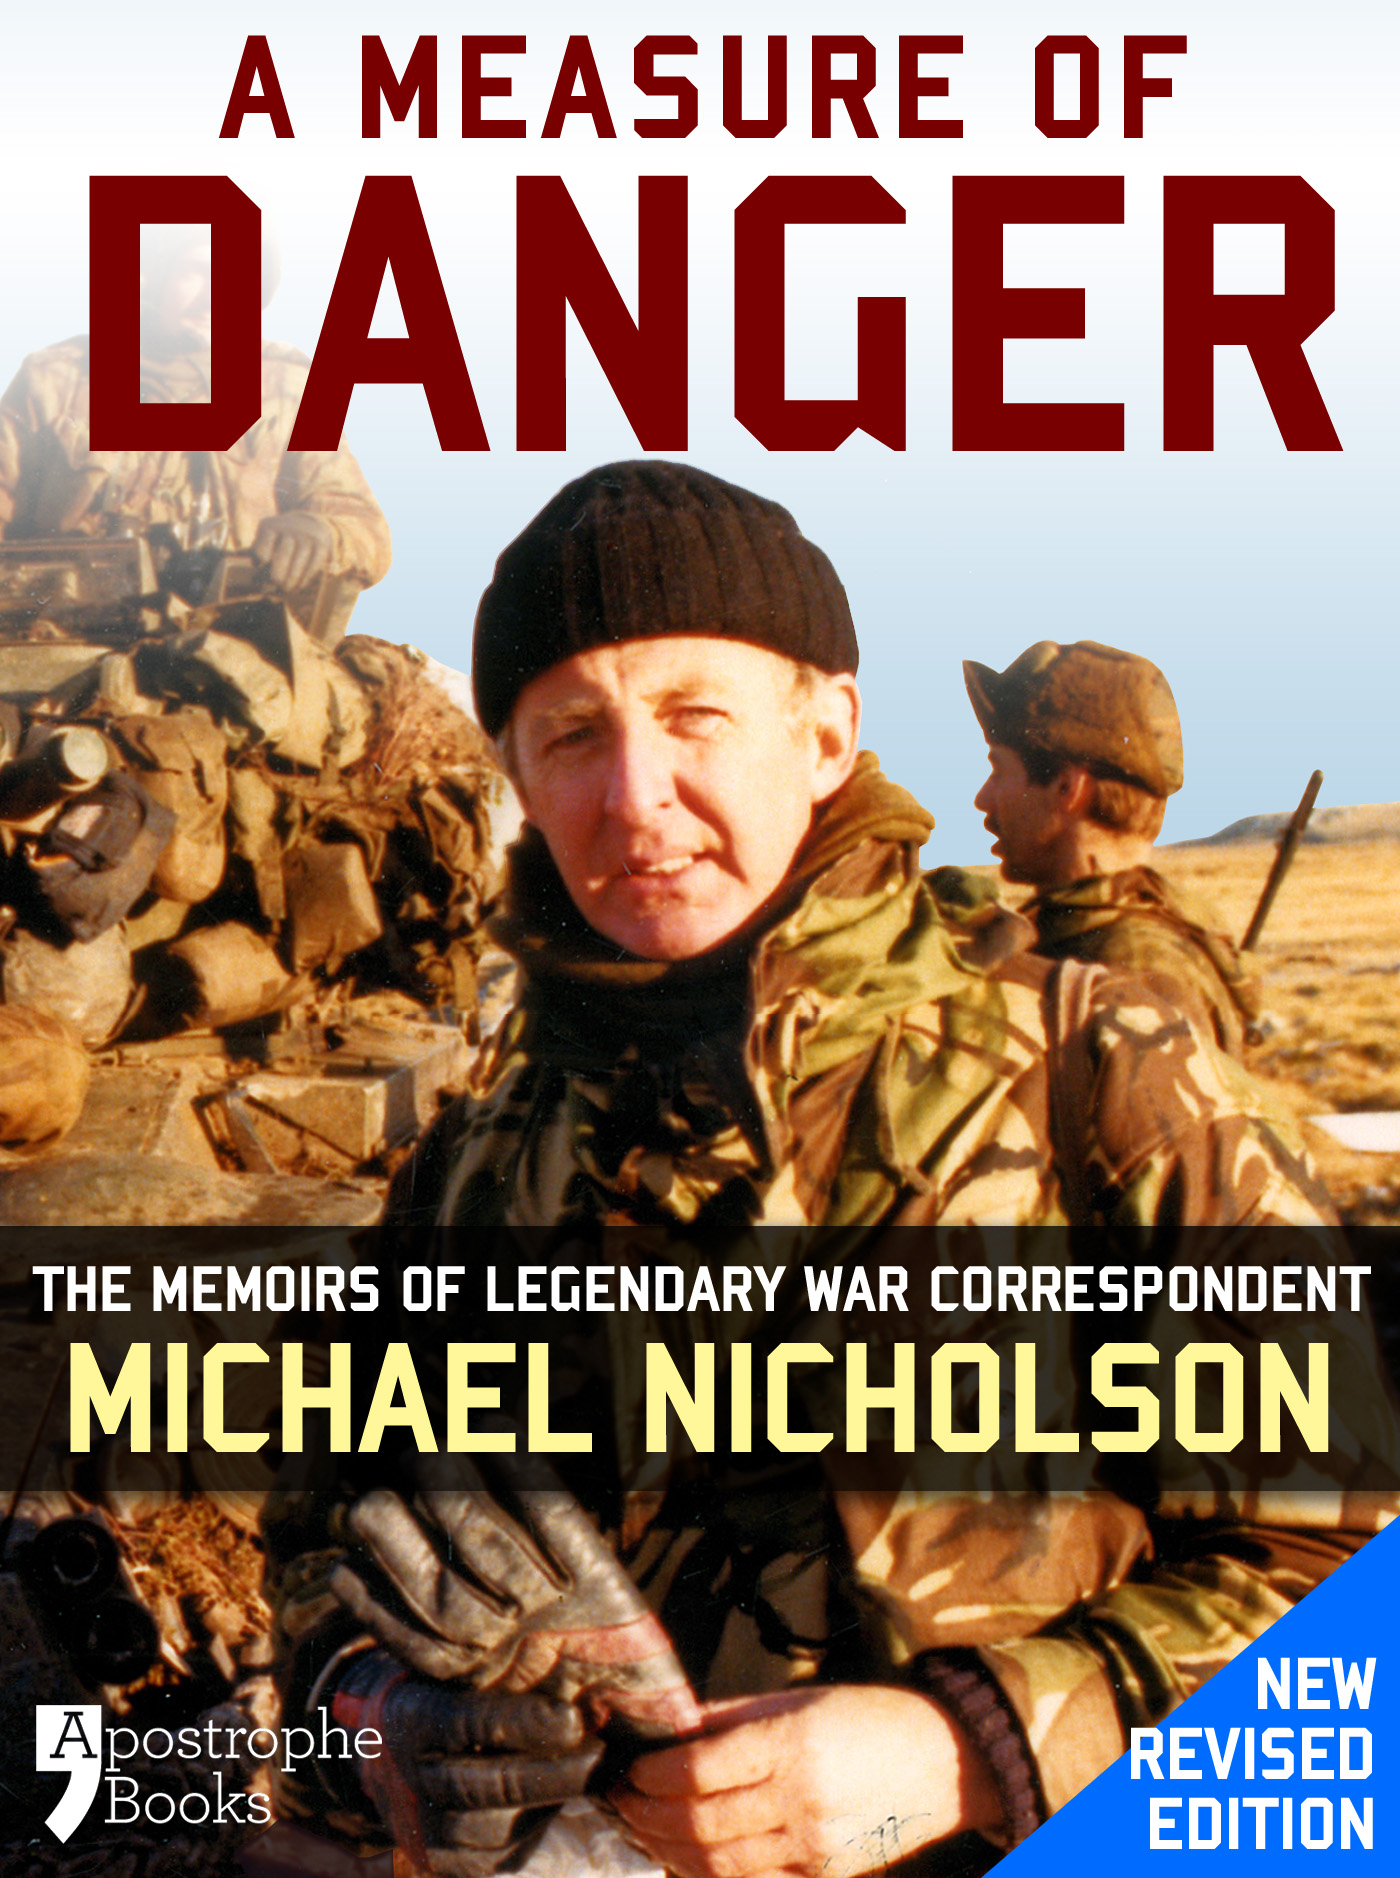 A Measure of Danger: The Memoirs of Legendary War Correspondent Michael Nicholson